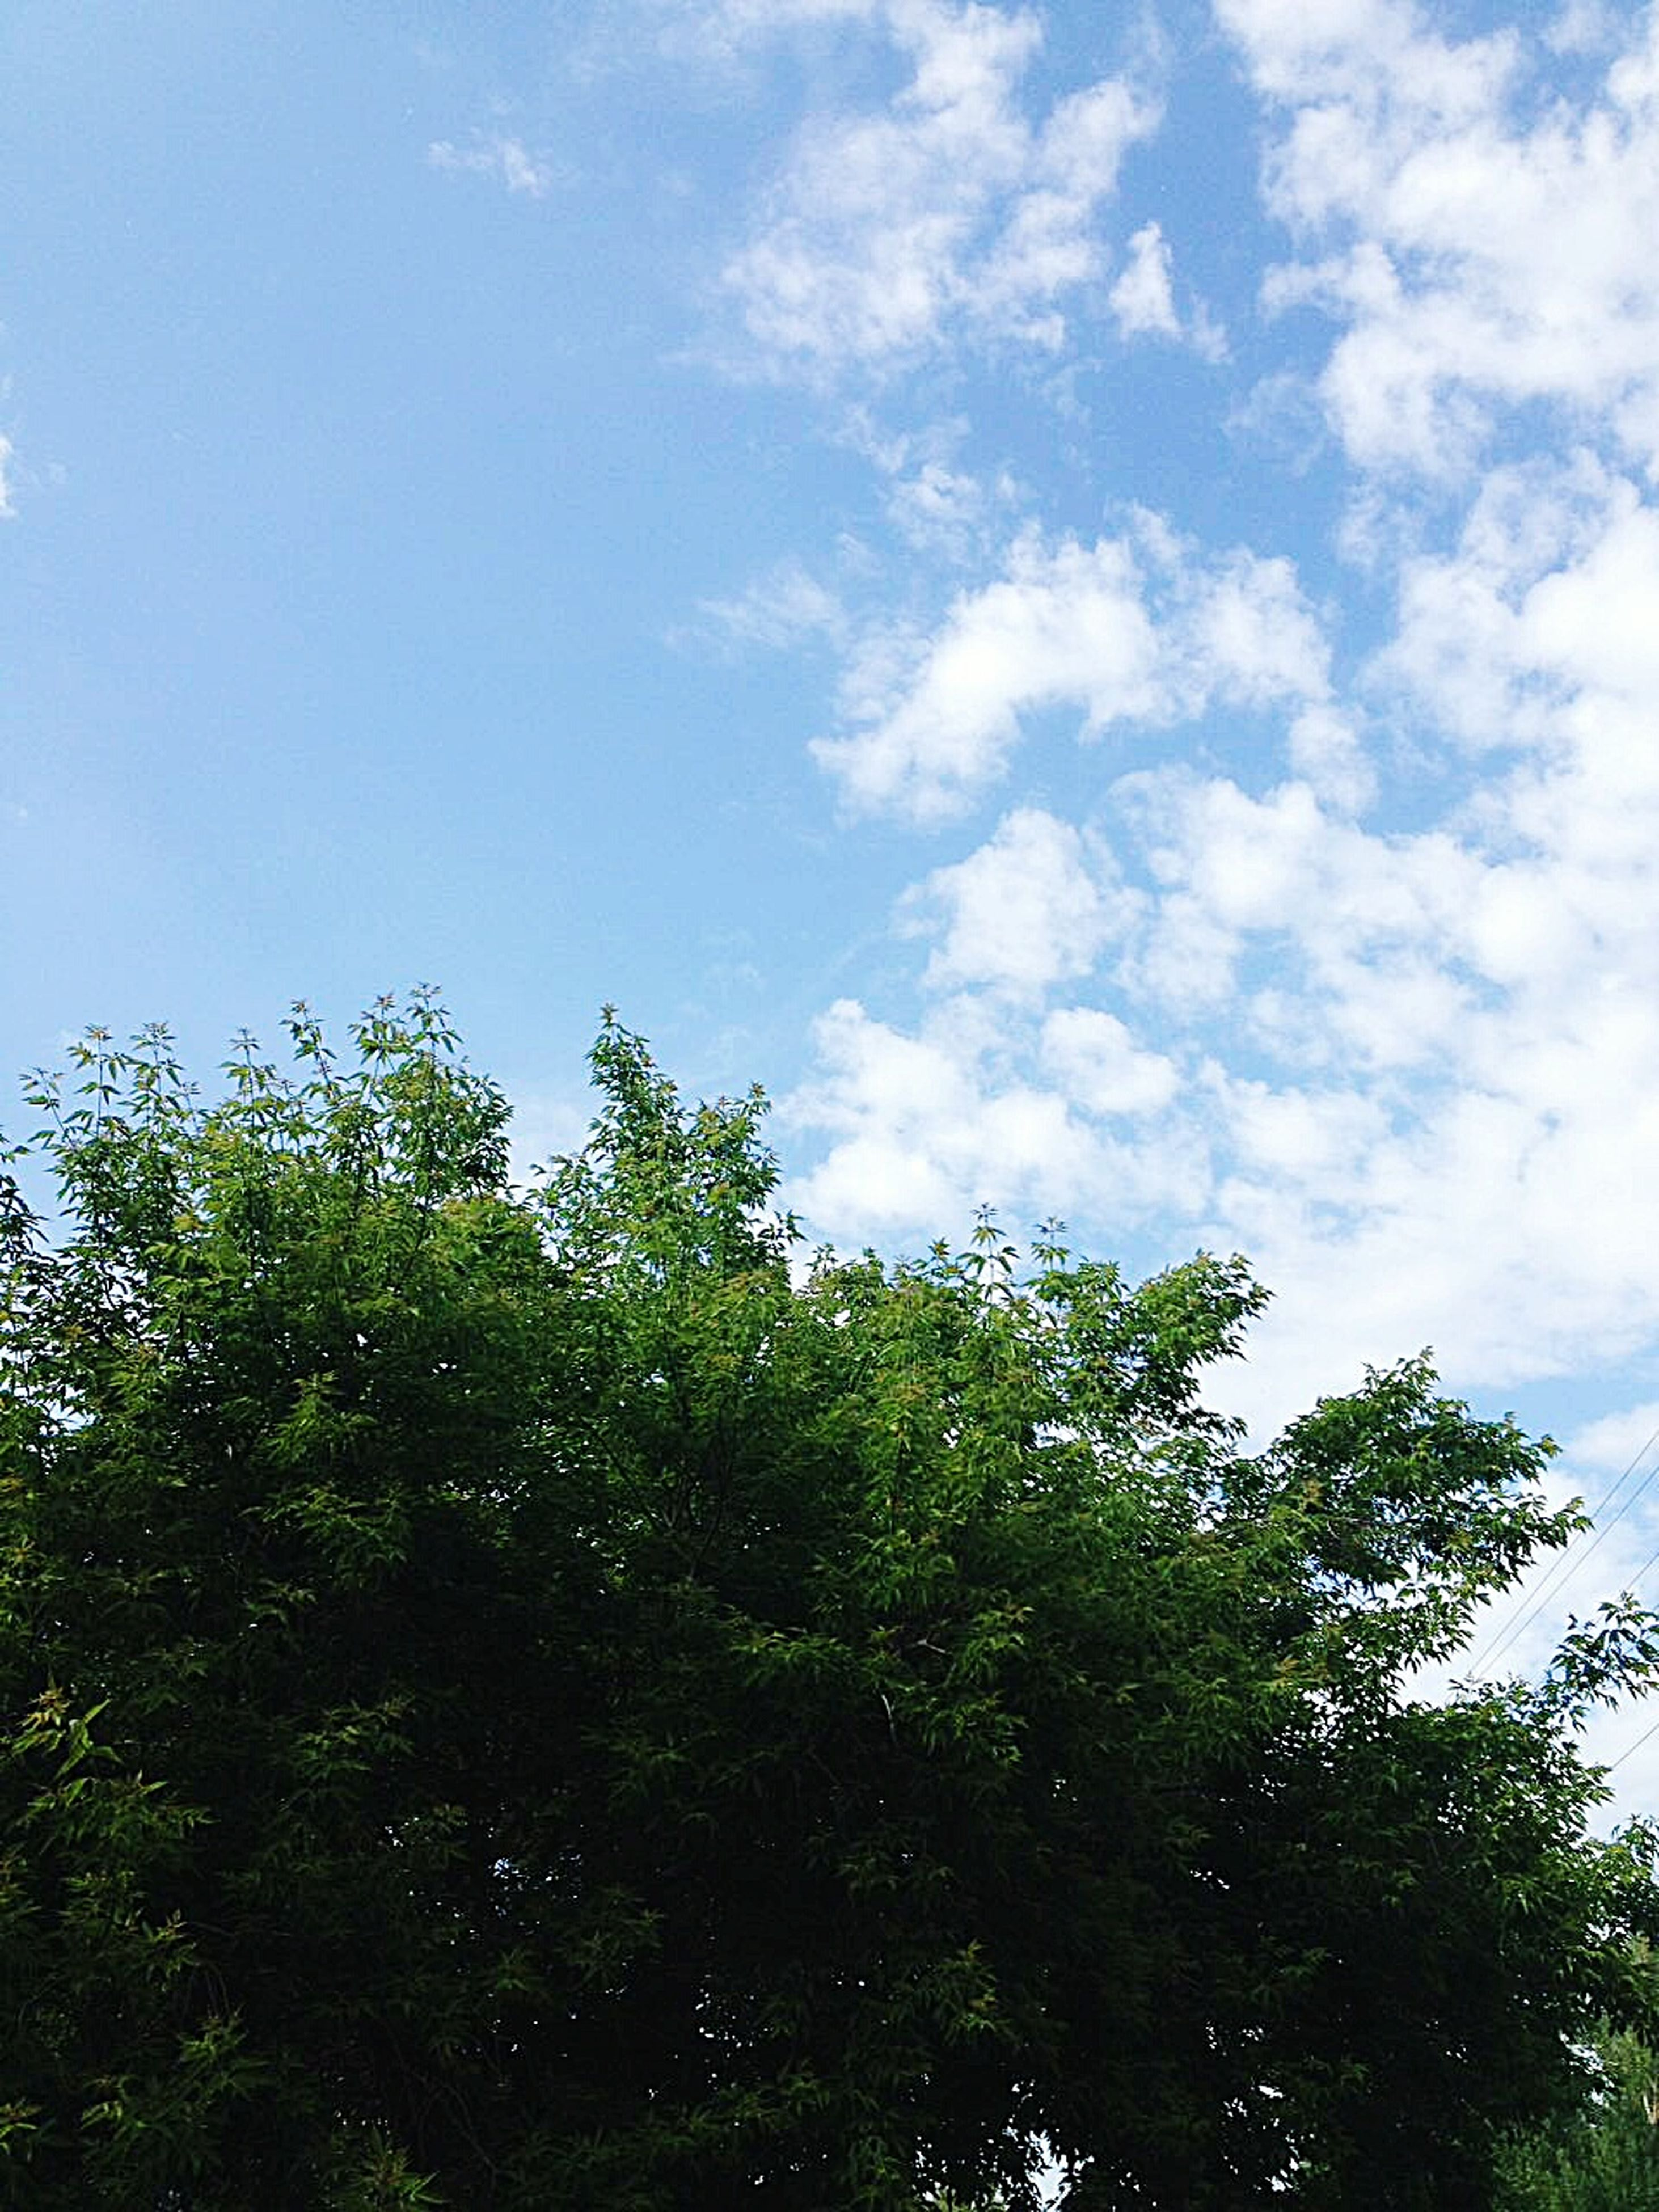 tree, nature, low angle view, day, sky, growth, no people, forest, beauty in nature, outdoors